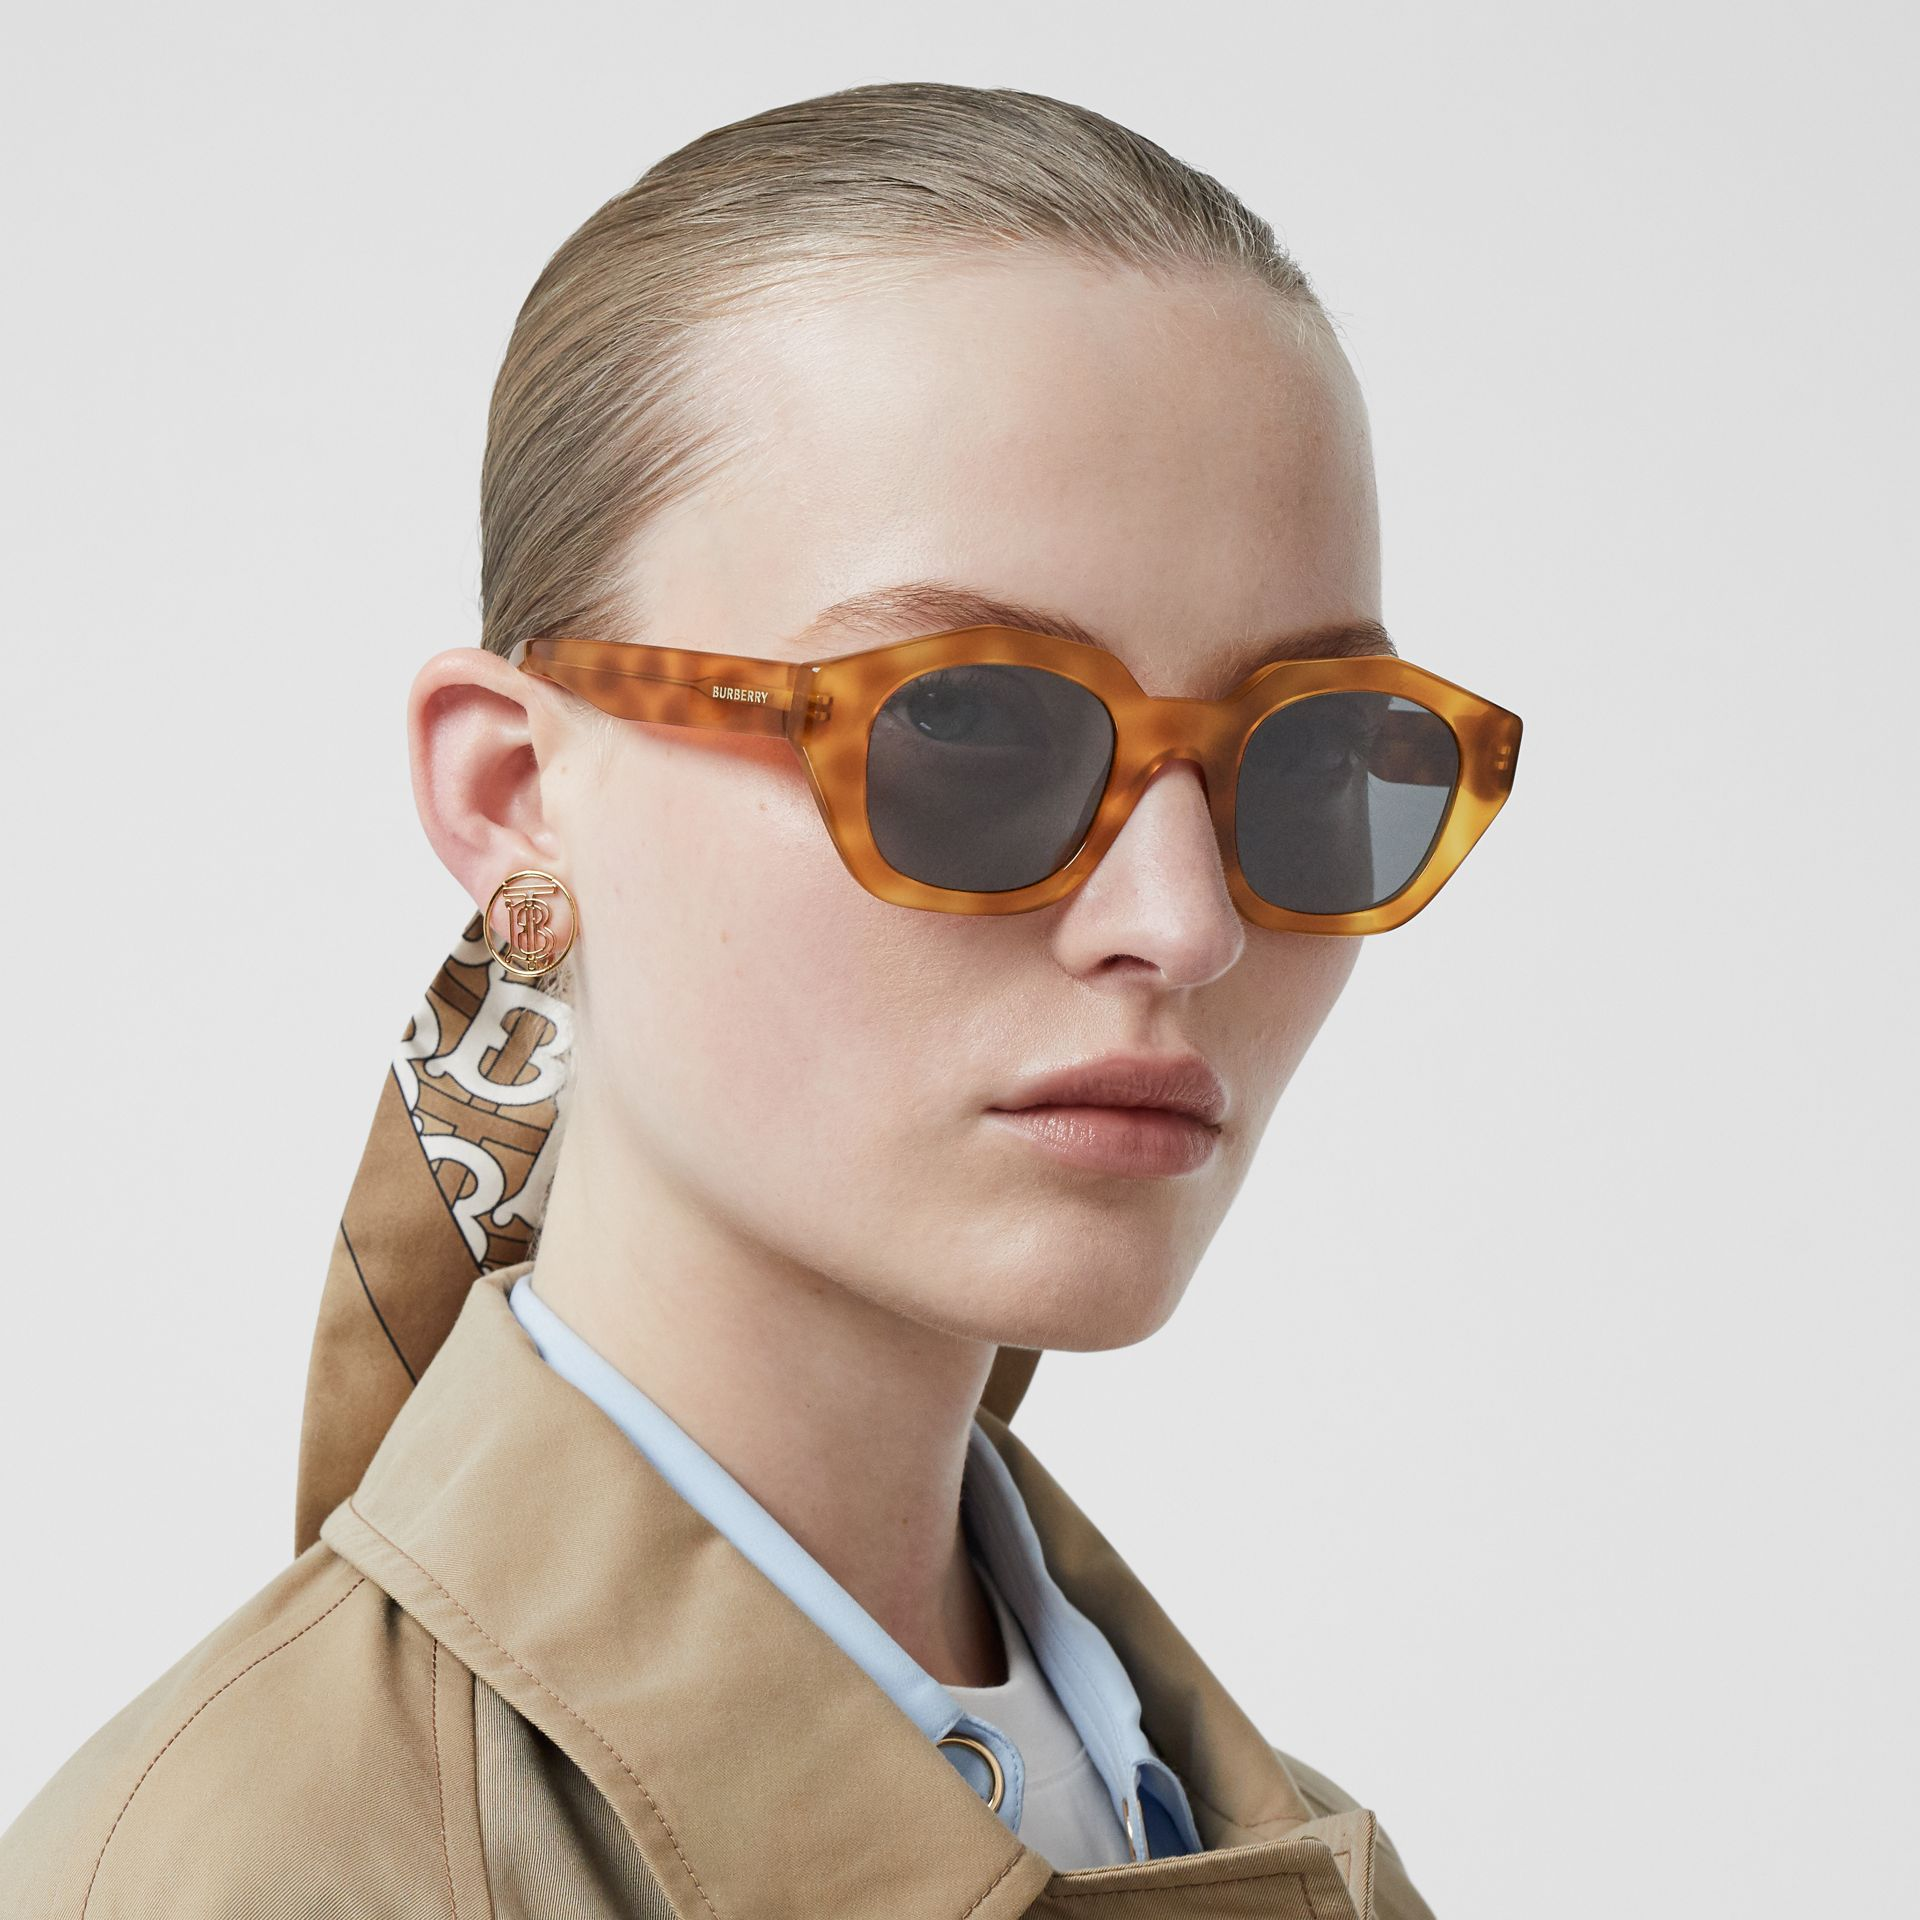 Geometric Frame Sunglasses in Tortoiseshell Amber - Women | Burberry Hong Kong - gallery image 2